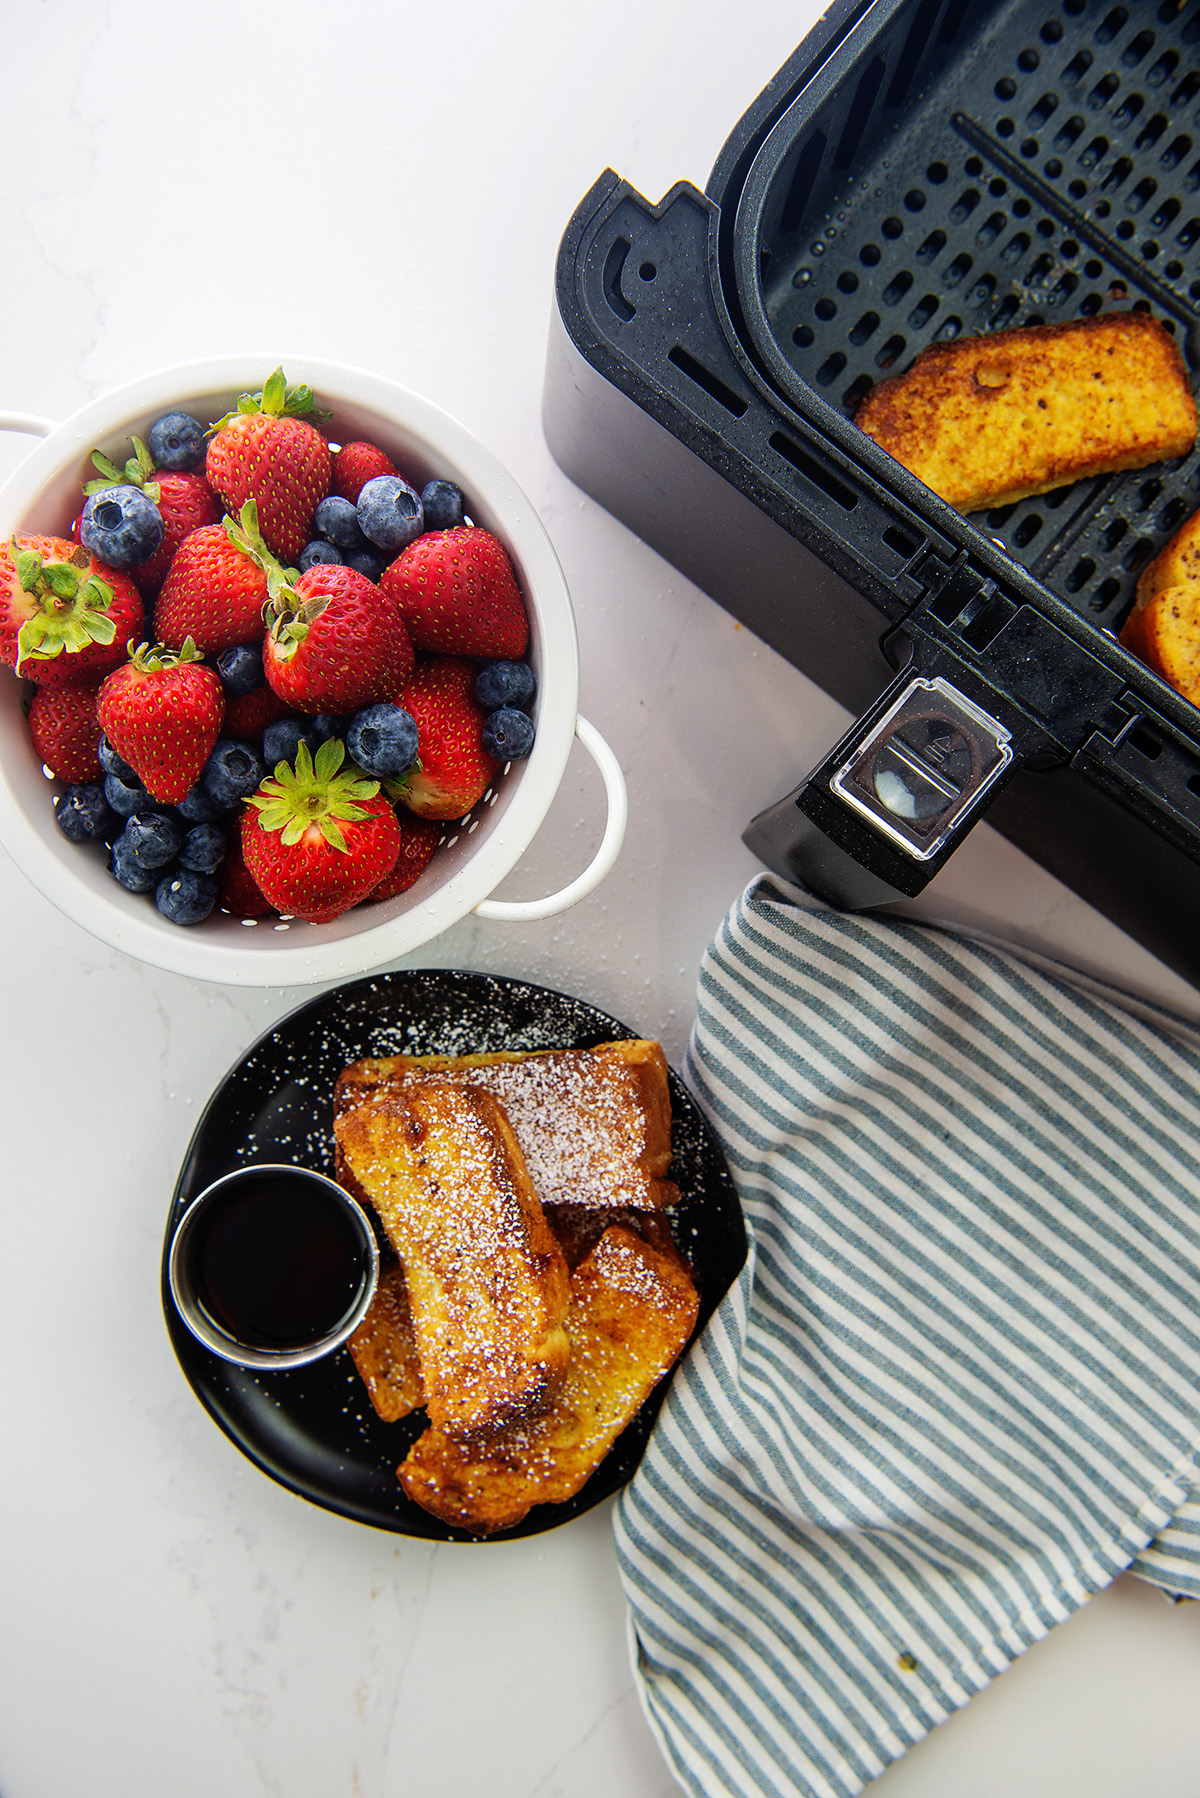 Overhead view of french toast, fruit, and an air fryer